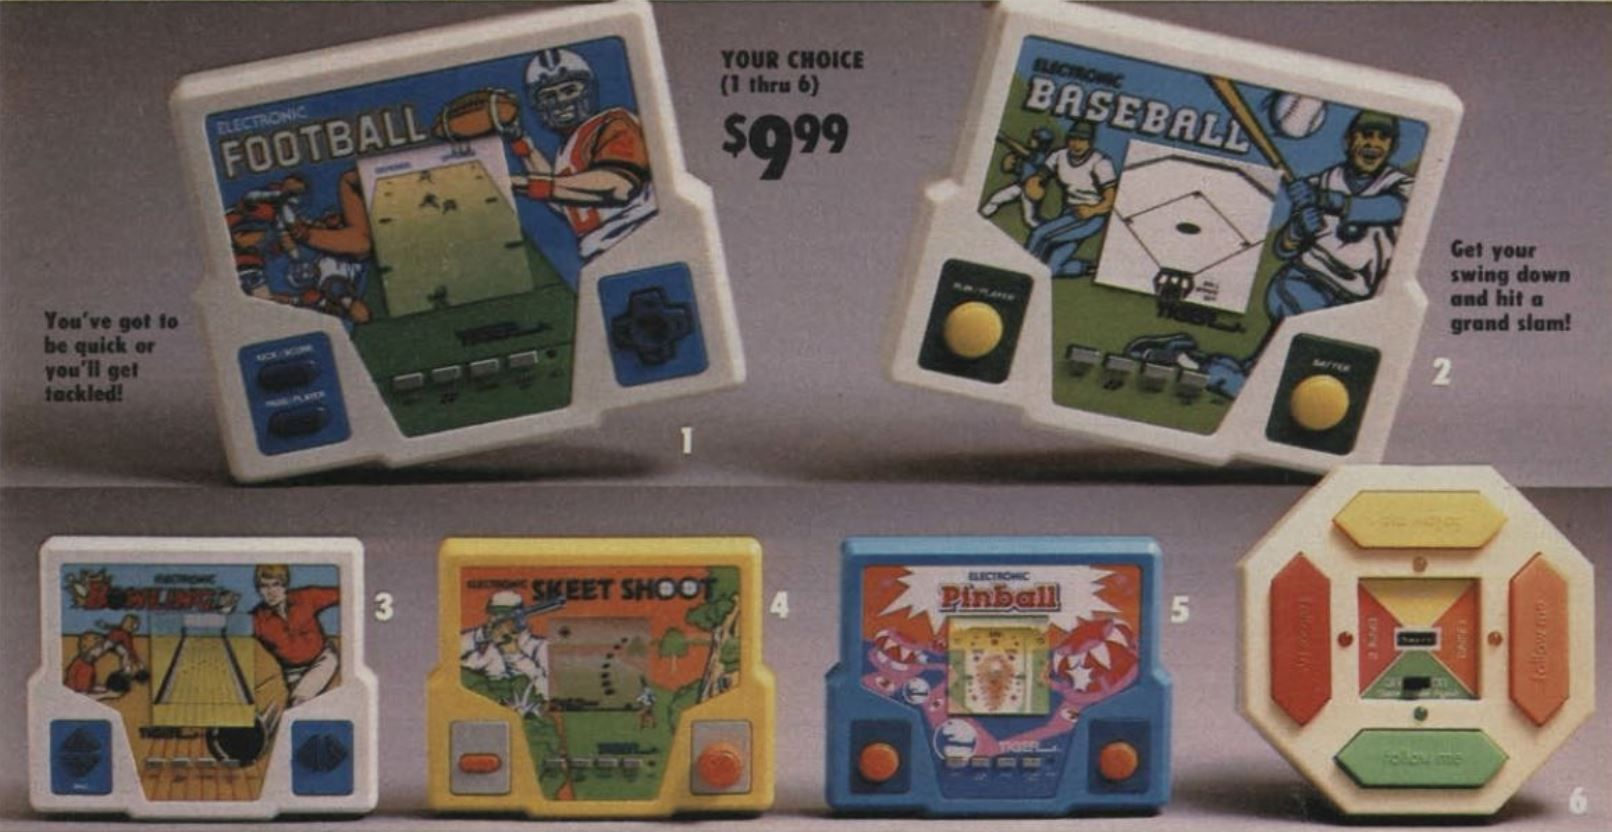 Handheld video games